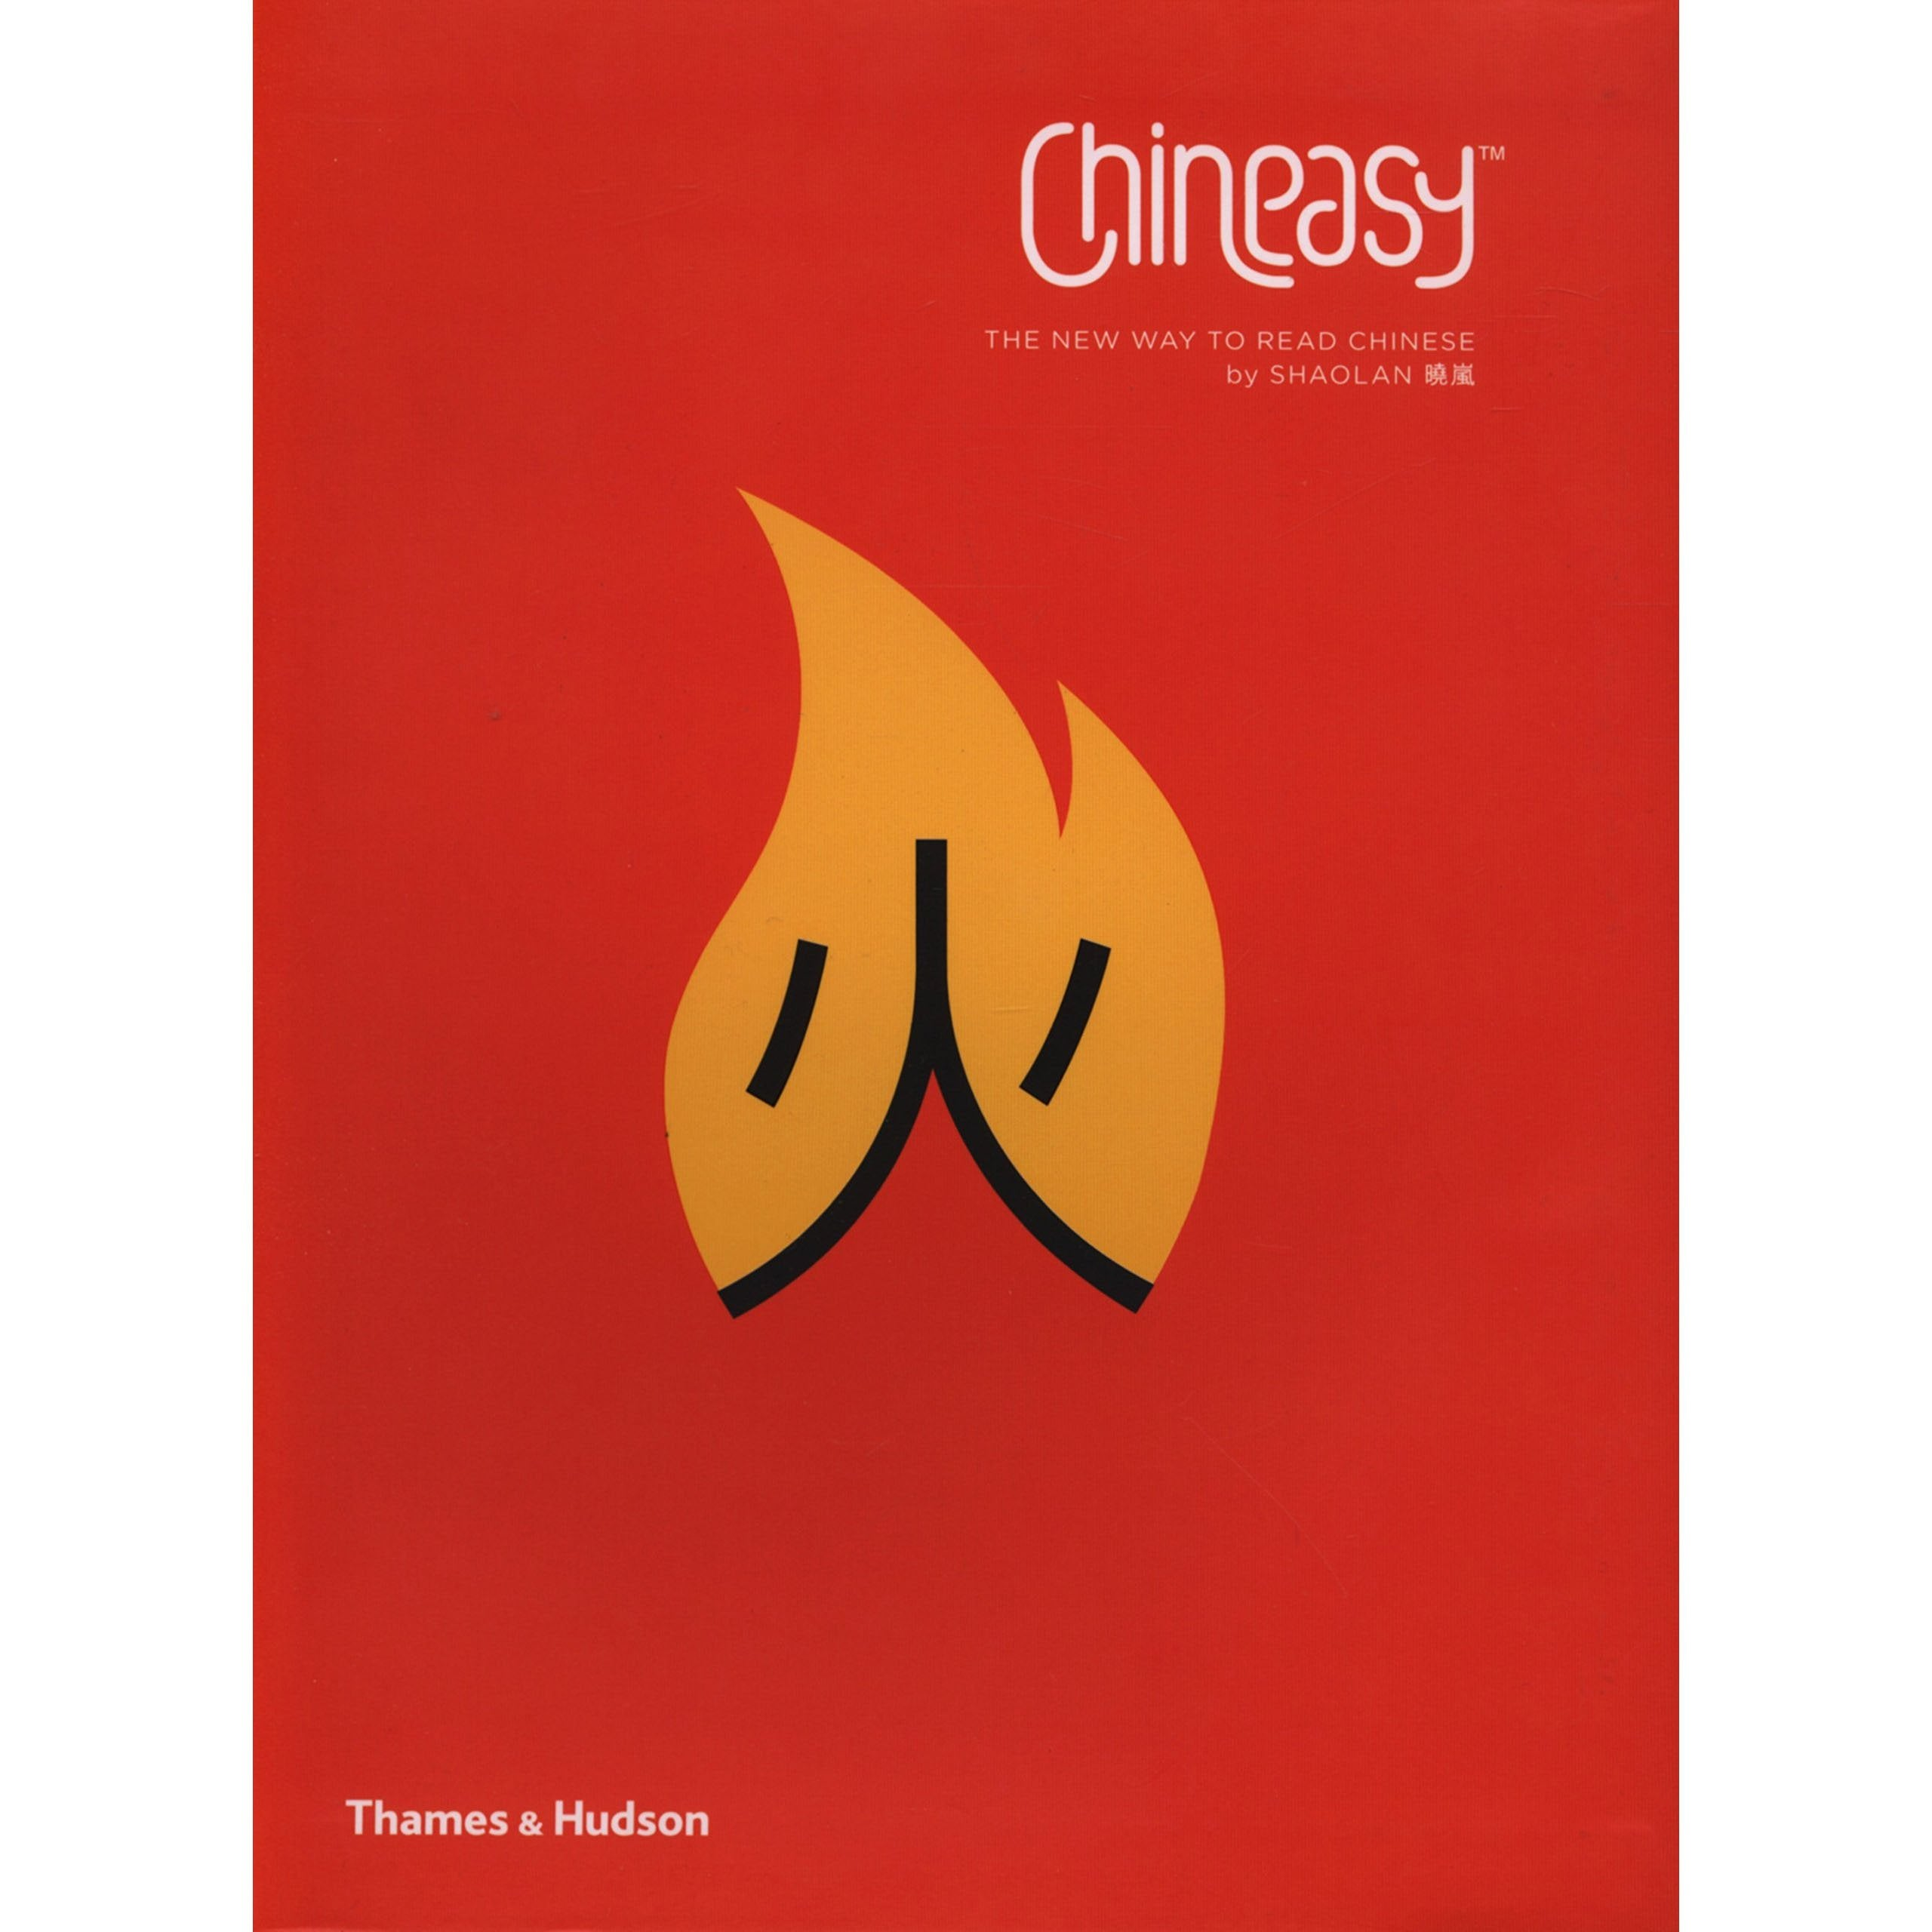 Chineasy The New Way To Read Chinese Pre Order Est